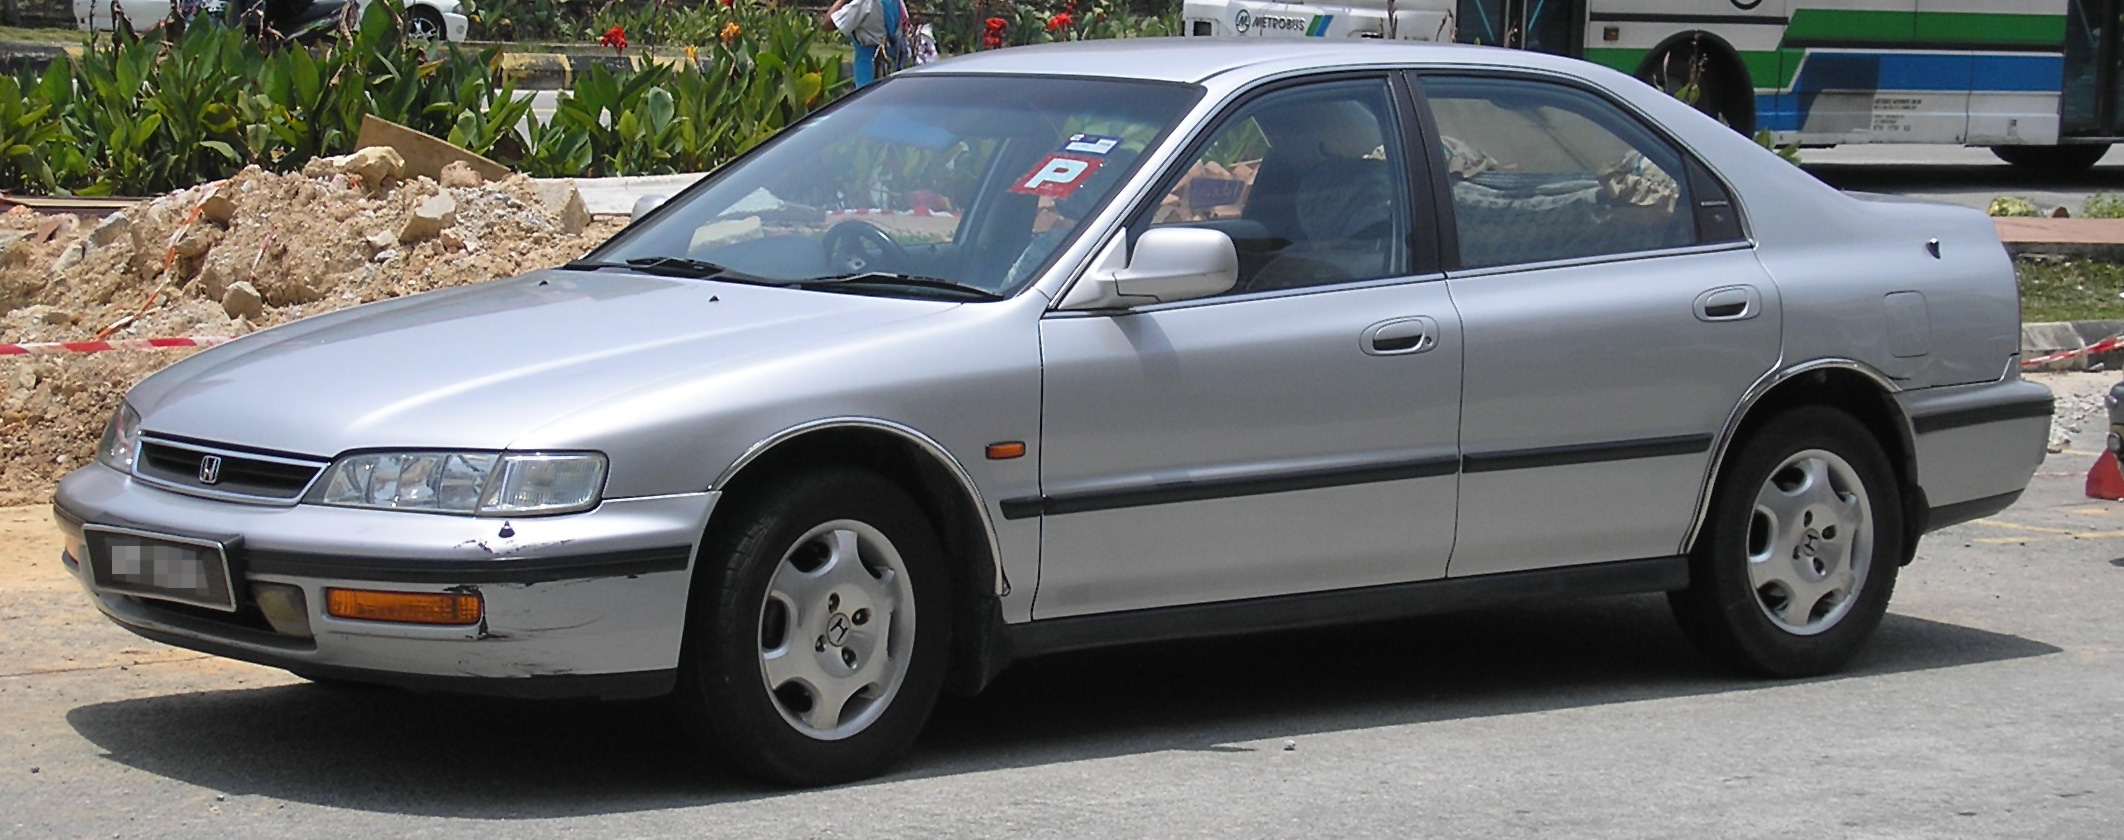 File honda accord fifth generation first facelift for Honda accord generations